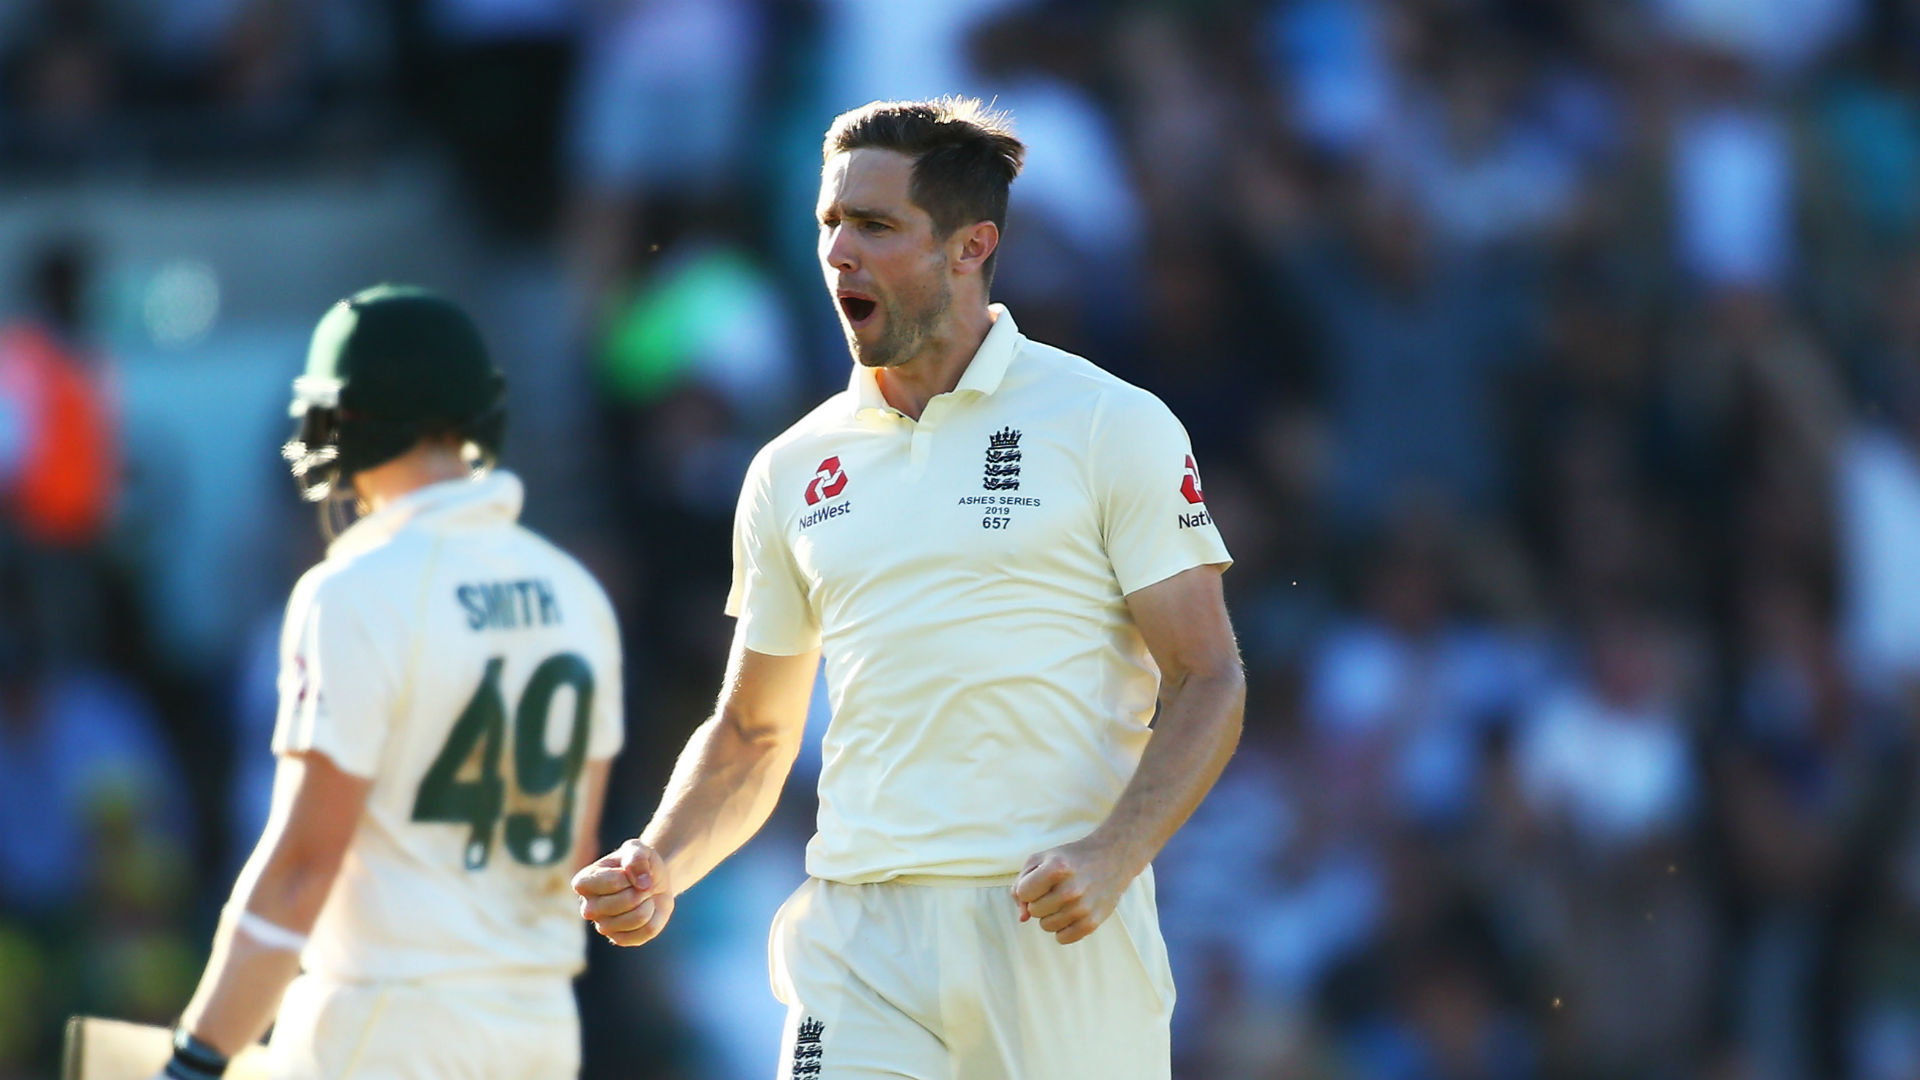 Ashes 2019: Archer could sense Smith was not at his best